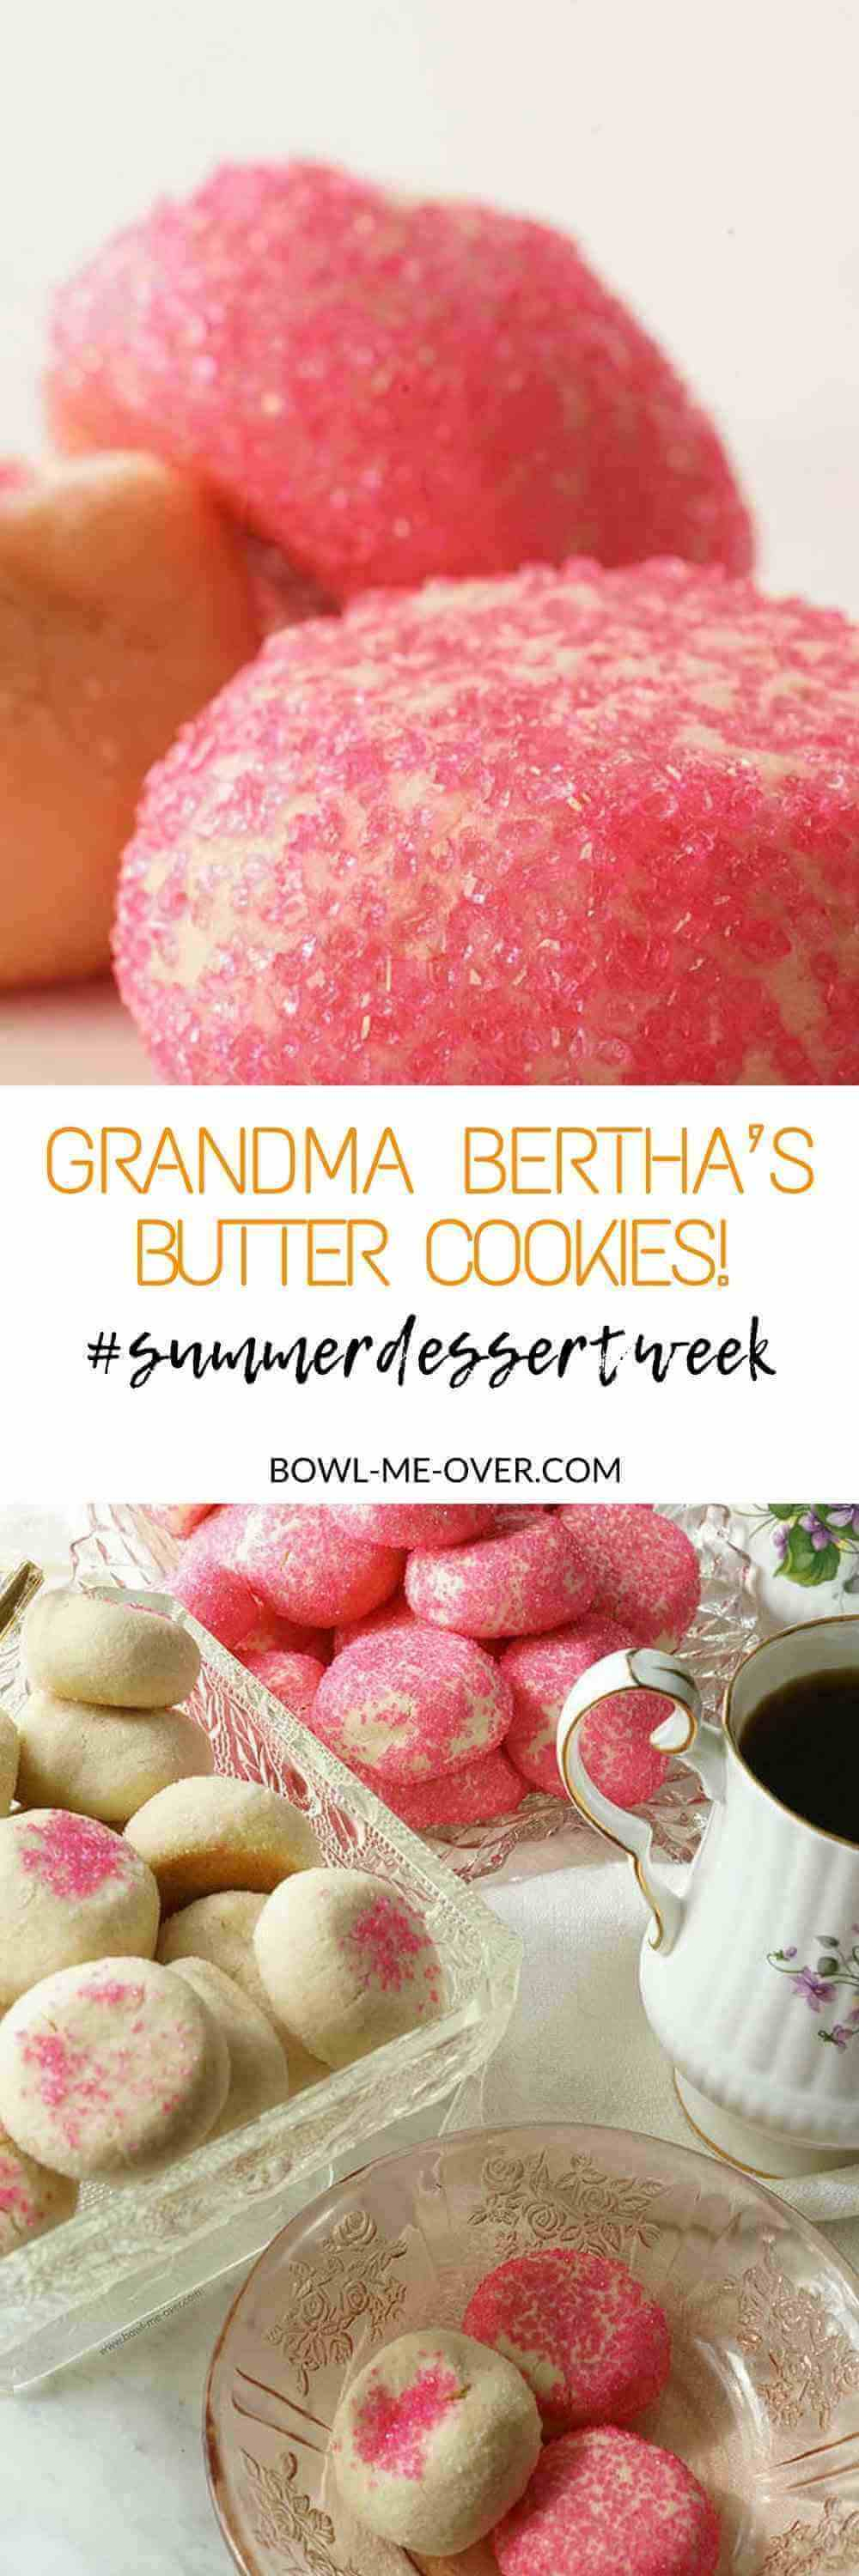 Grandma Bertha's Cookie Recipe!